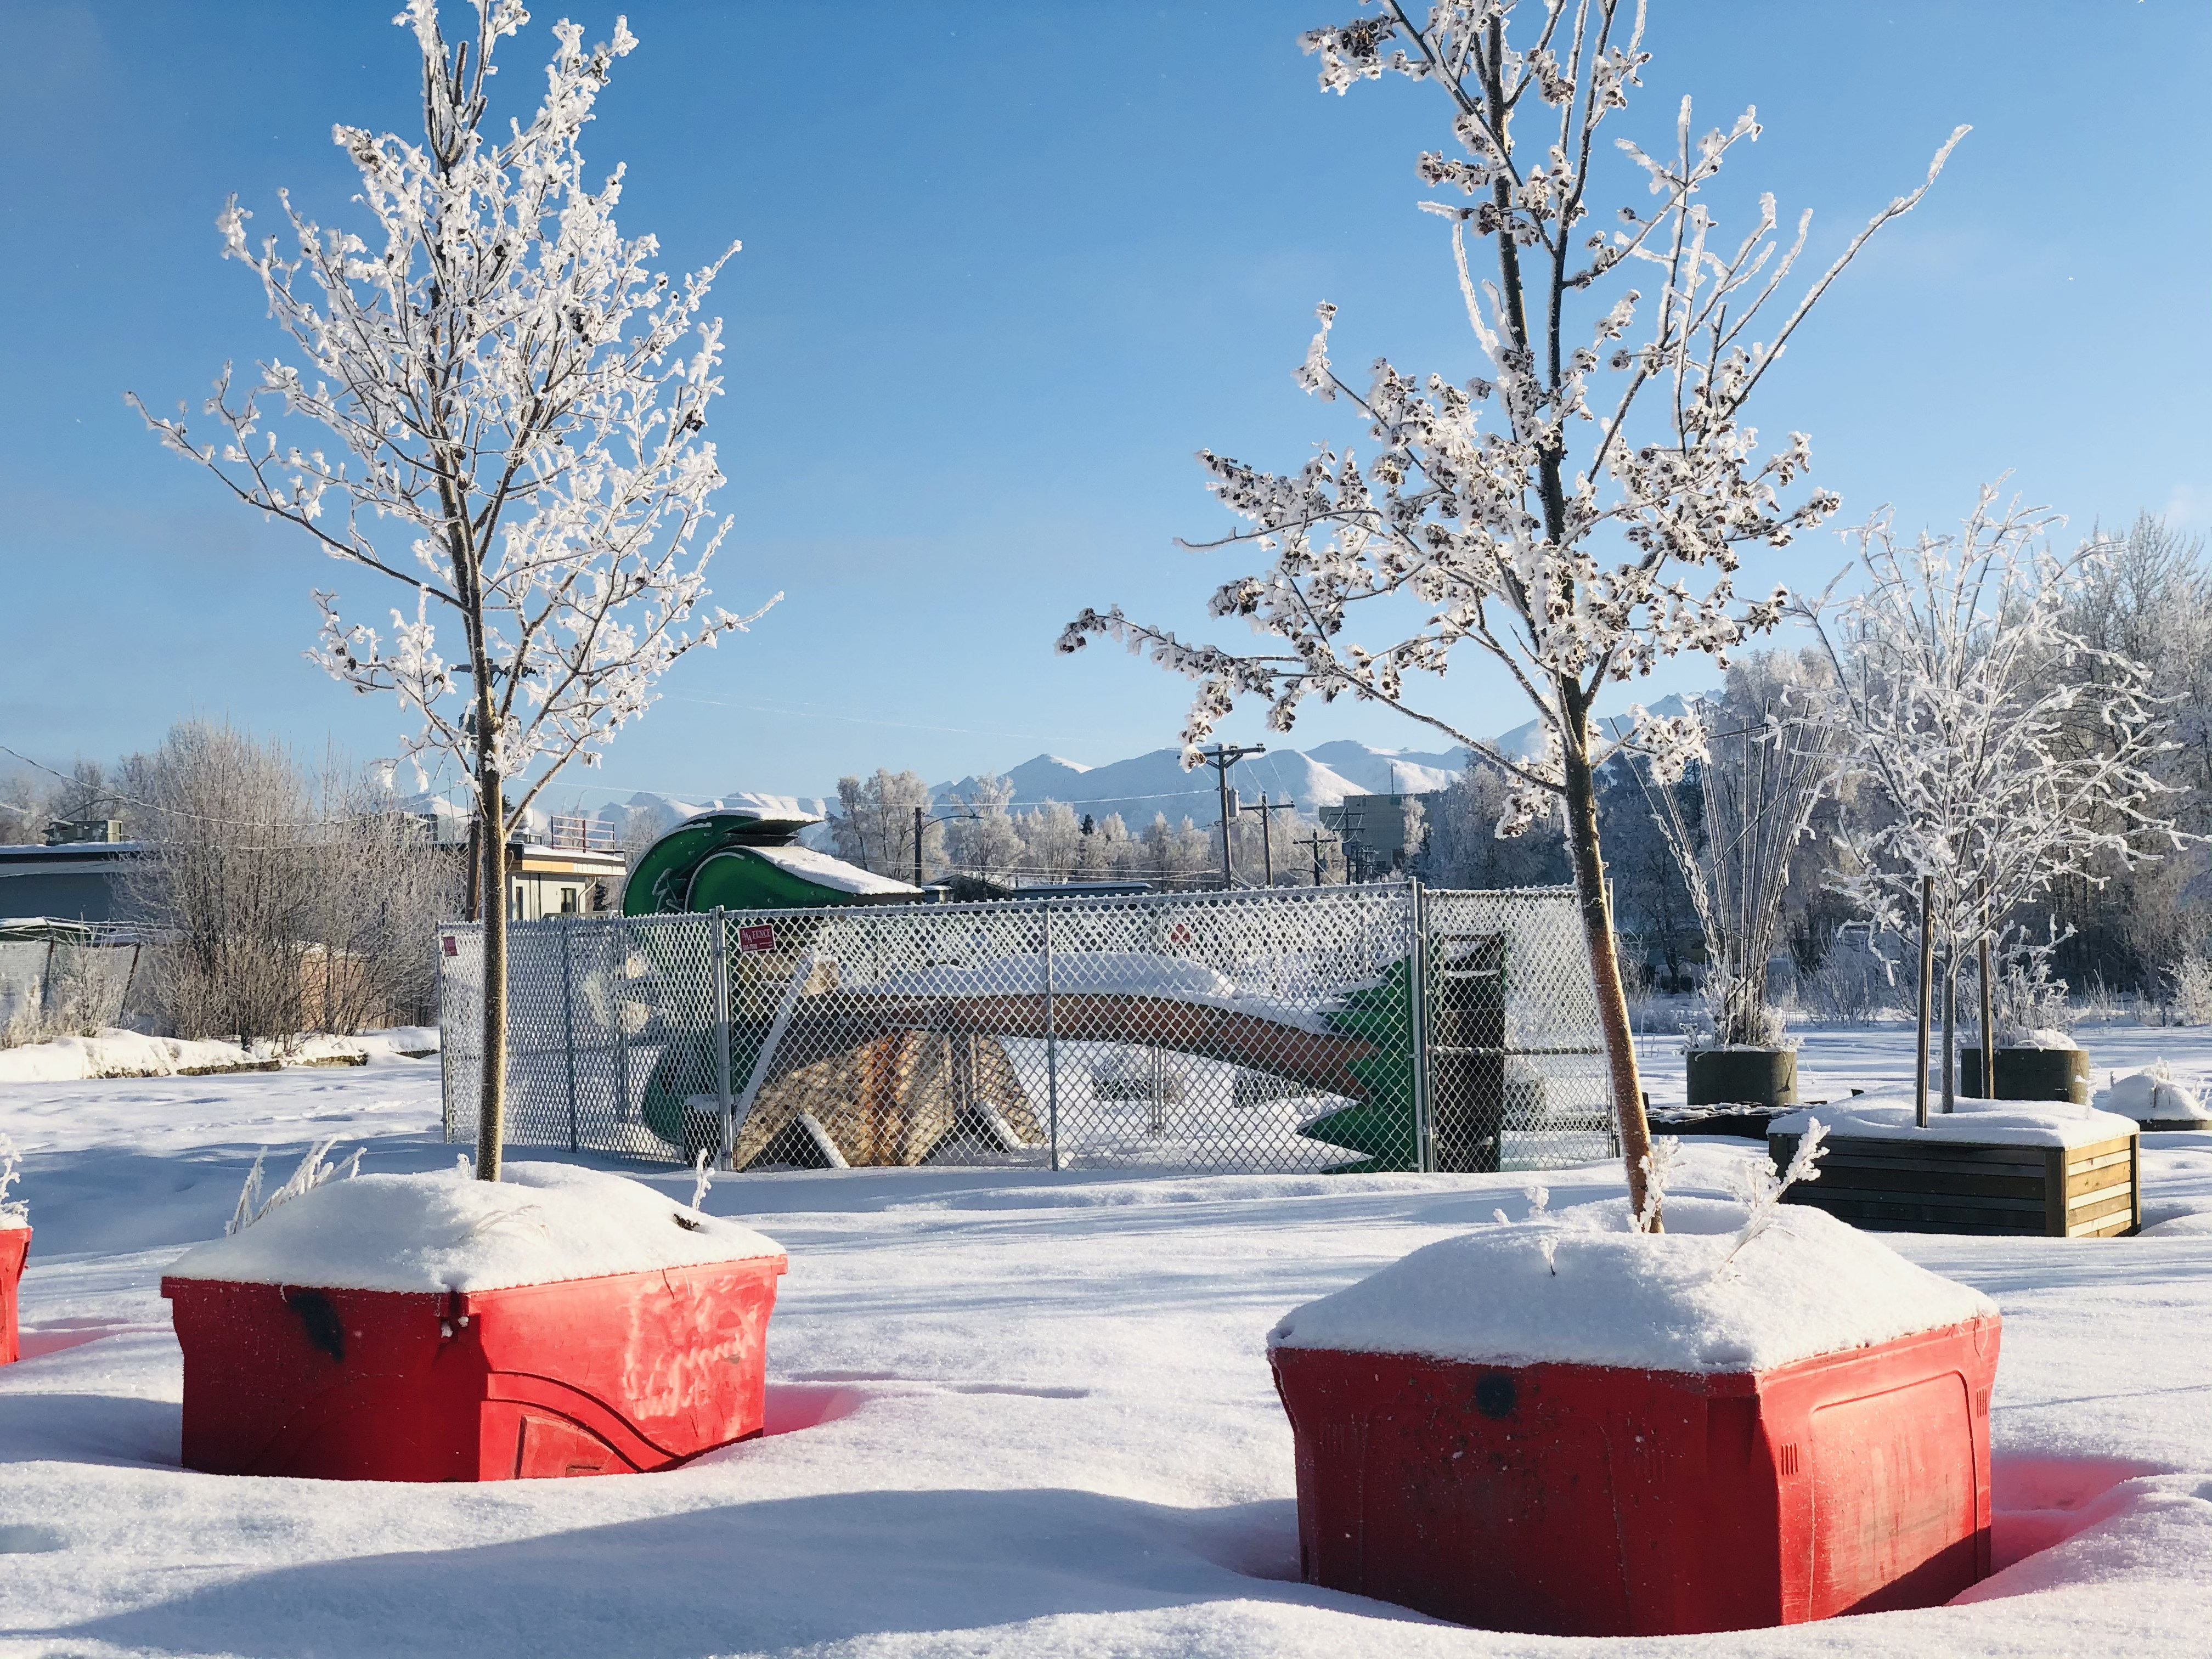 The paradise palm has been on the corner of Chugach Way and Spenard Road for over two years, but the Spenard Community Council announced new plans for the tree at their February meeting.